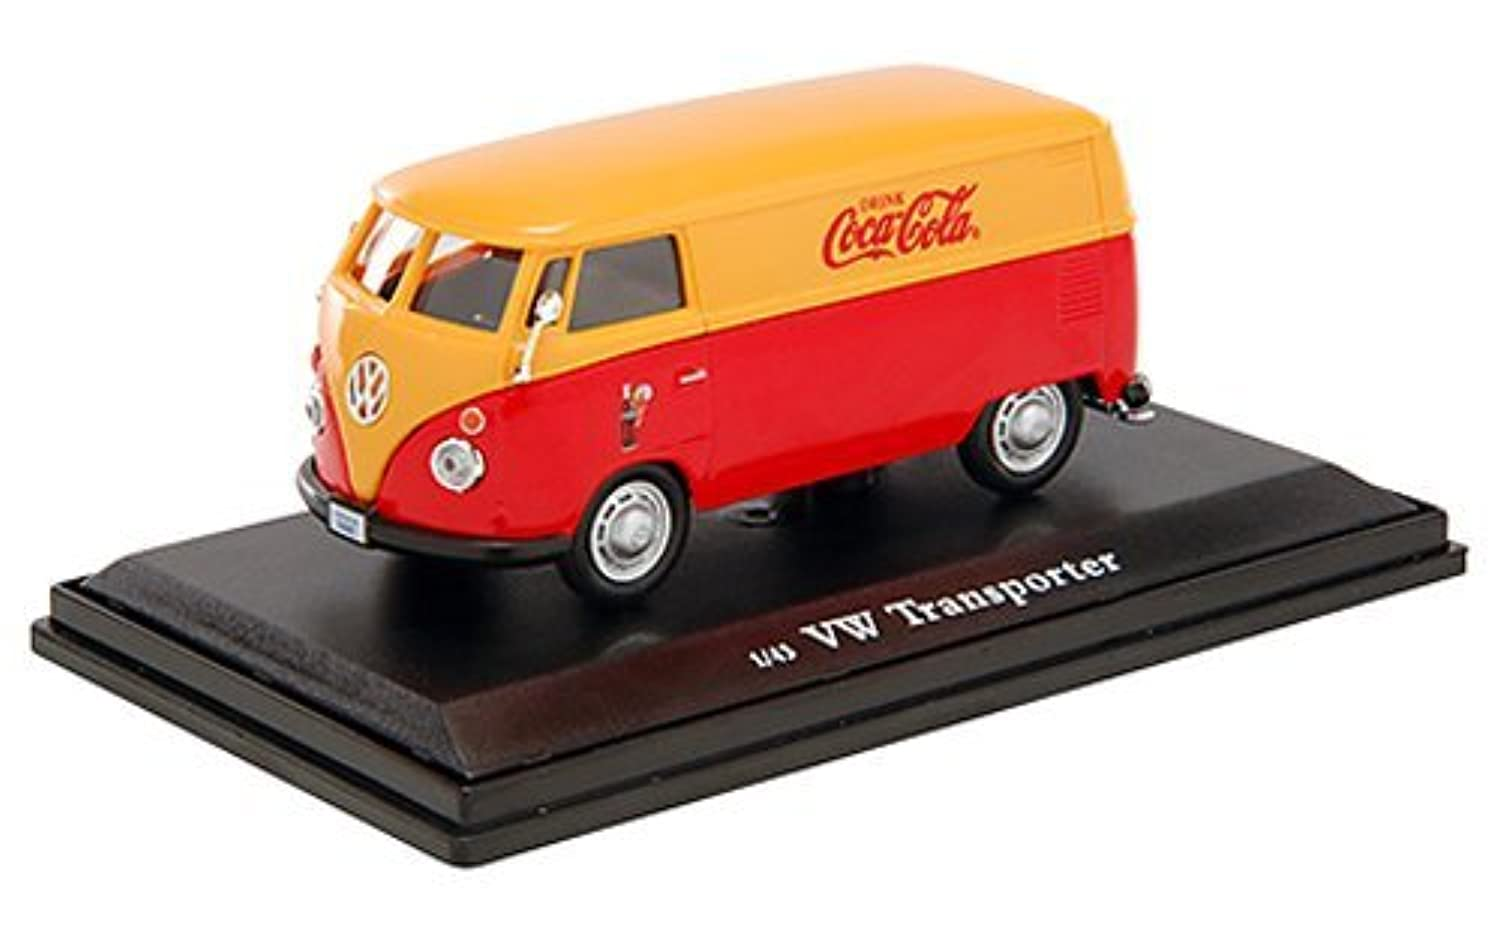 Coca - Cola Collectibles 1 / 43 VWカーゴバン1962レッド&イエロー